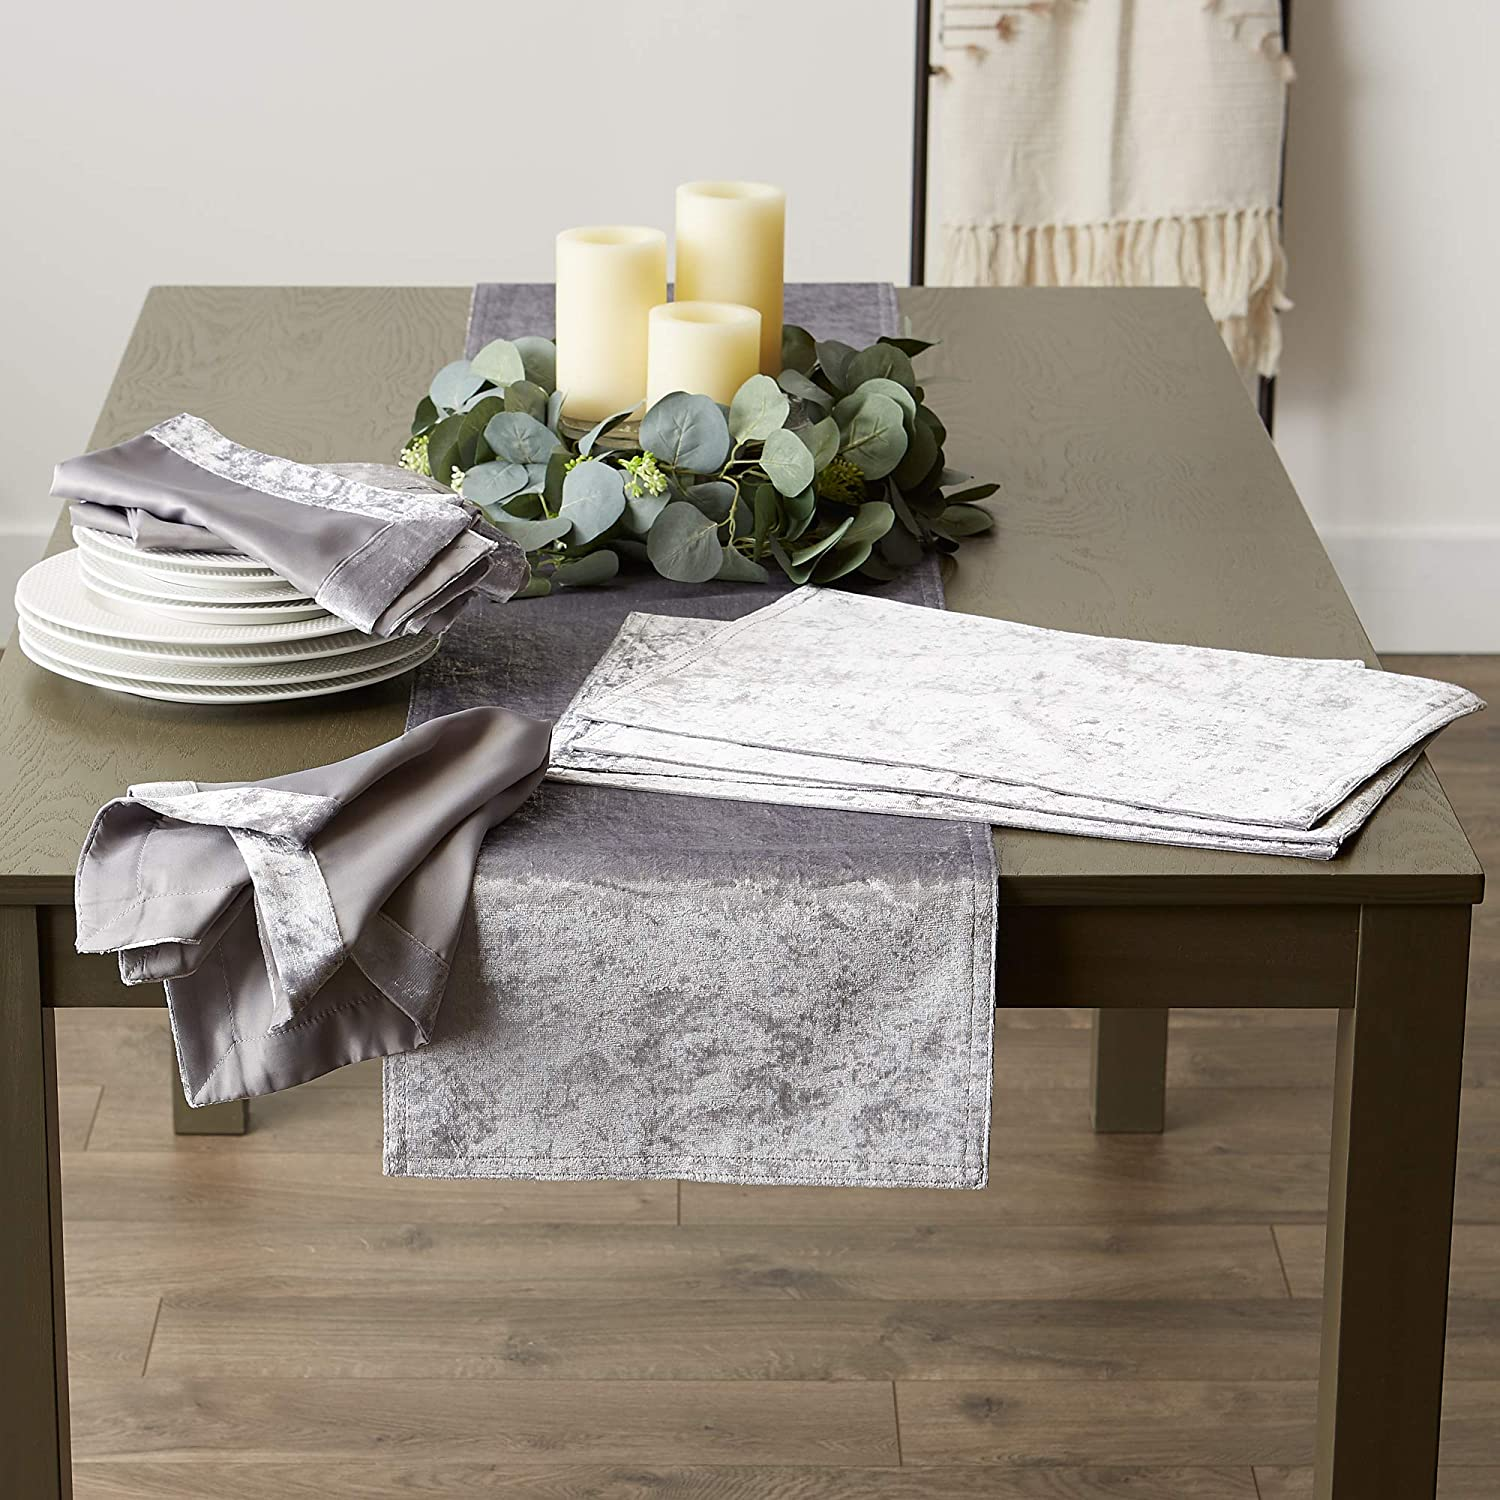 Table Runner Polyester DII Tabletop Cream 14x72